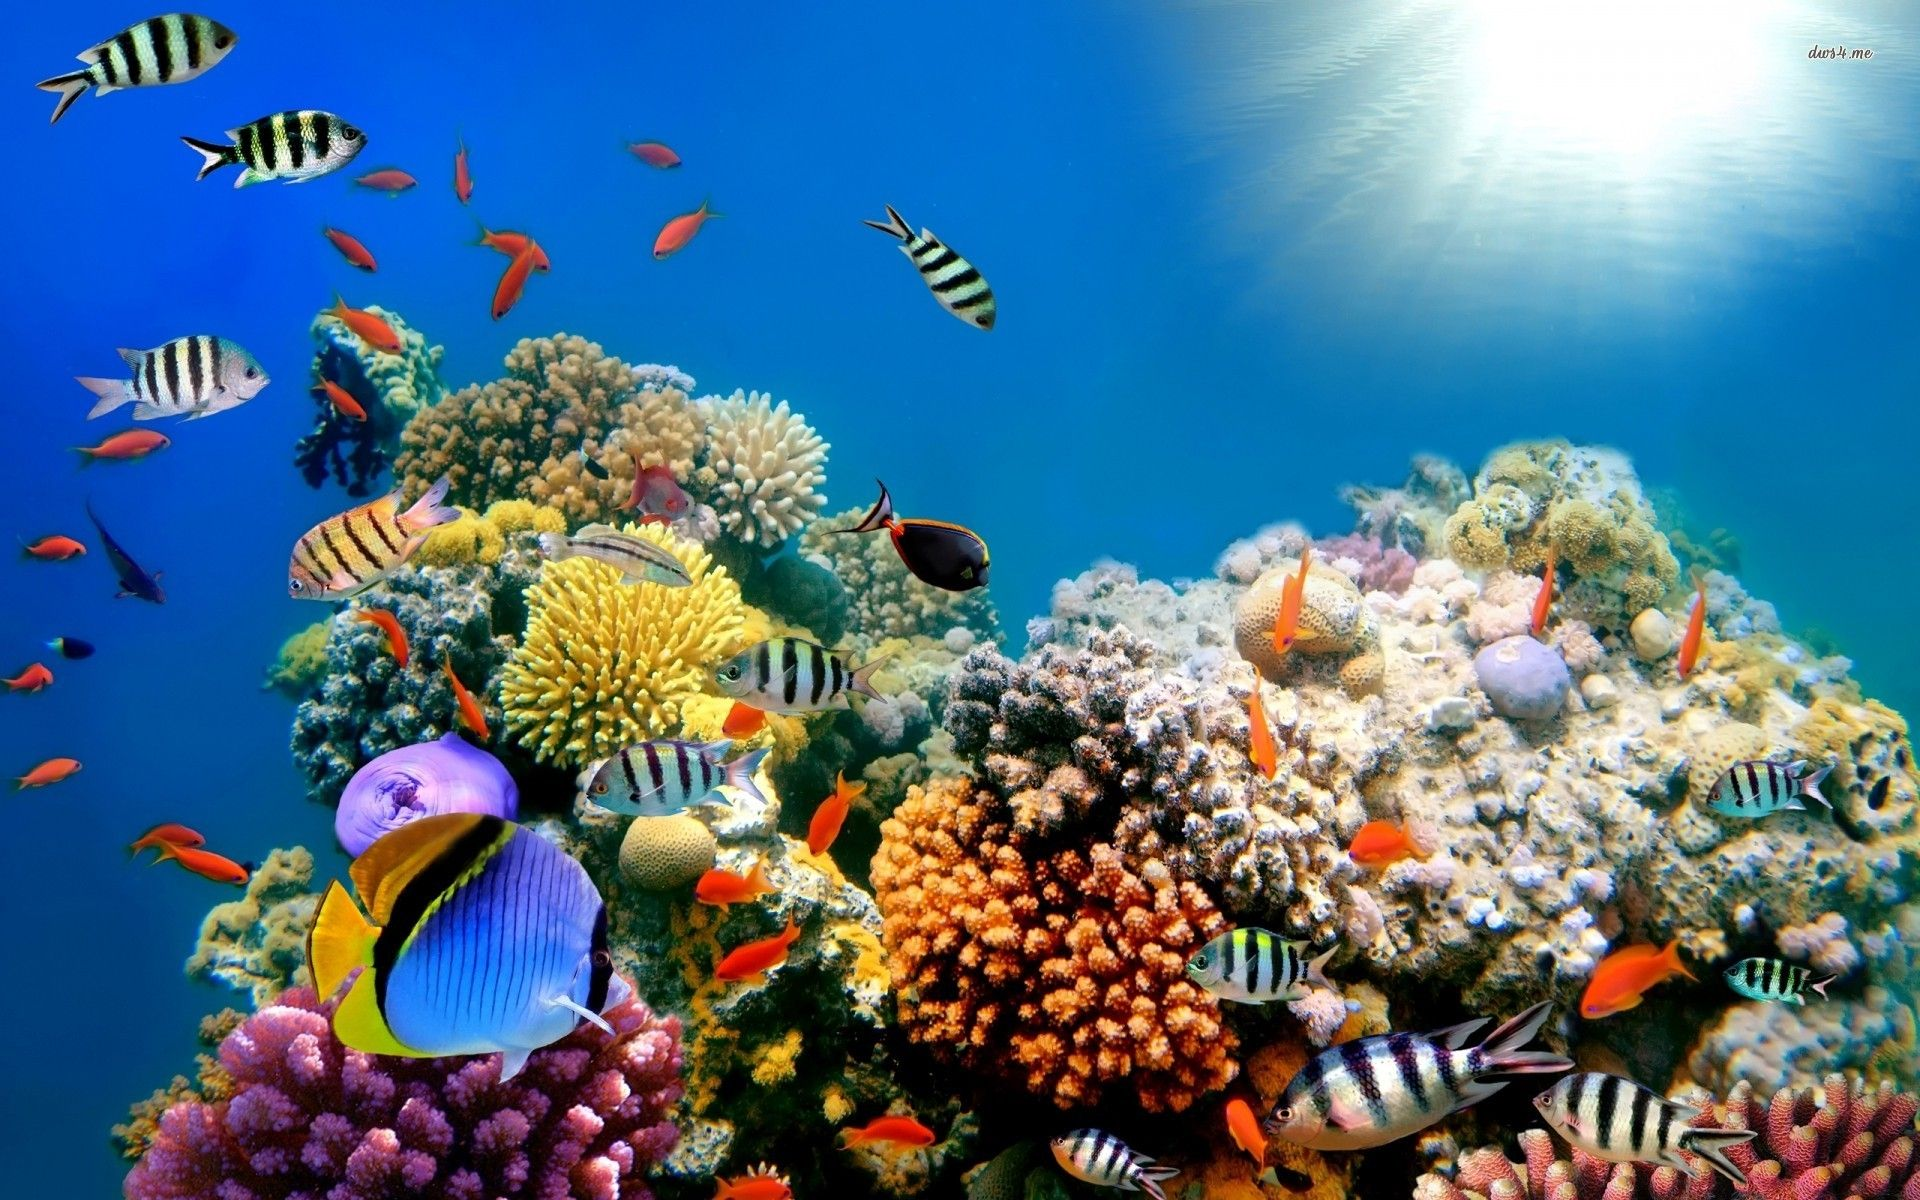 A Sea Change In The Corporate Policy Of Large Pet Chains Reefs Coral Reef Pictures Fish Wallpaper Aquarium Backgrounds